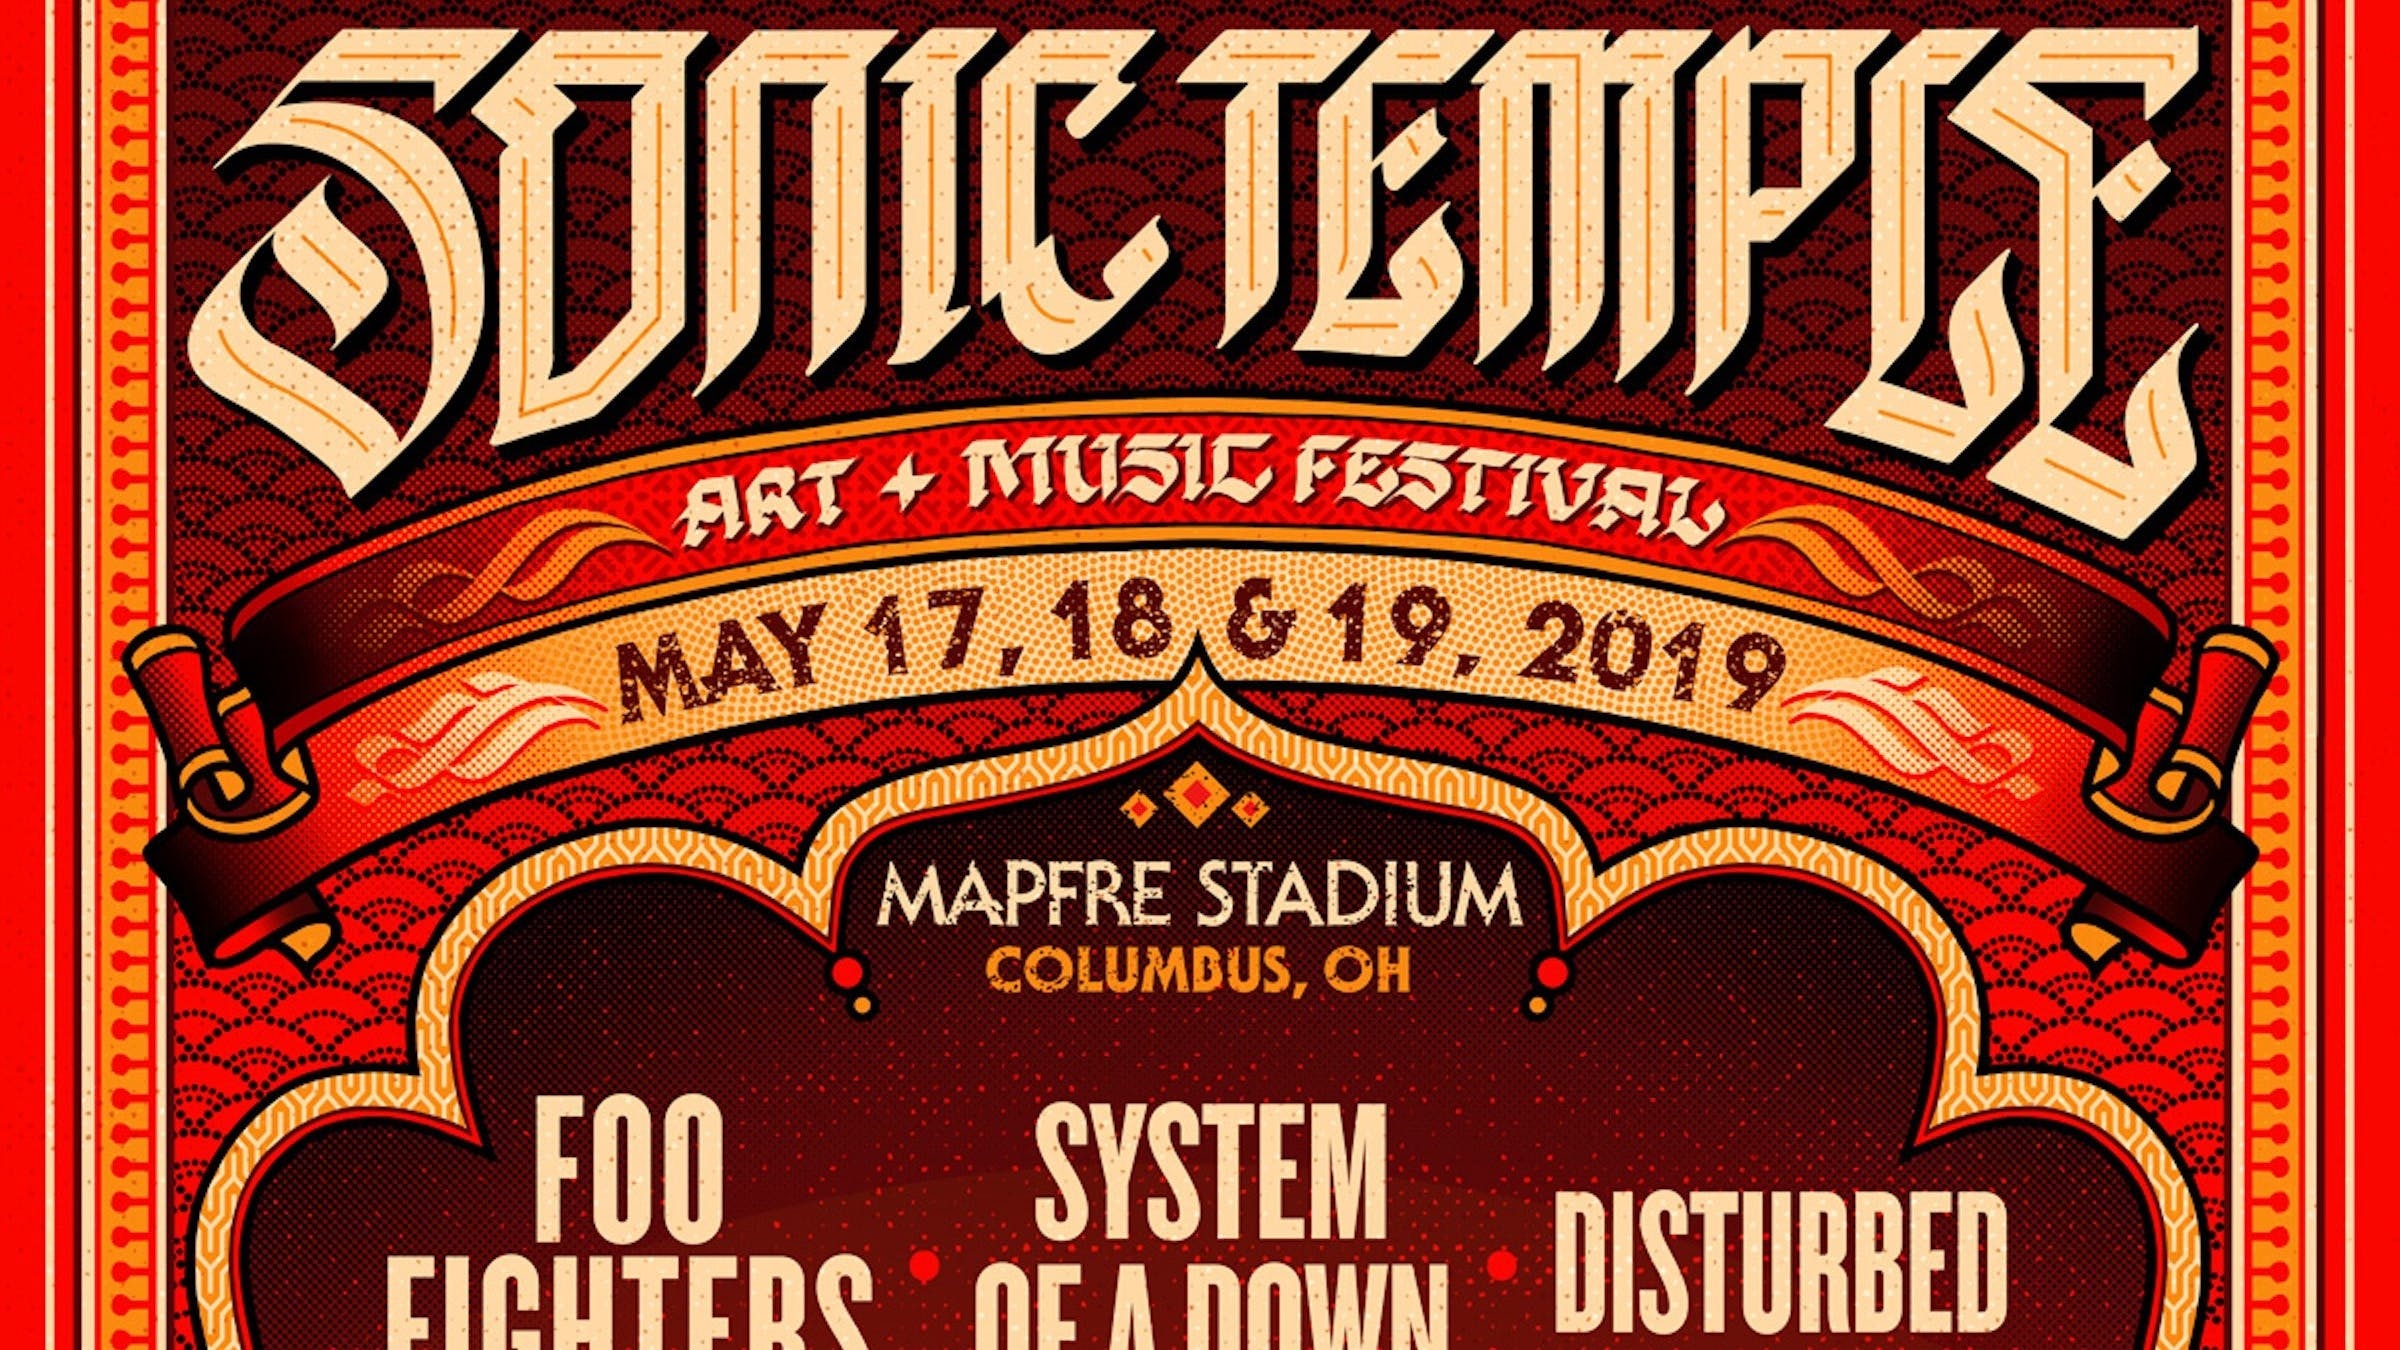 Foo Fighters, System Of A Down, And Disturbed To Headline First-Ever Sonic Temple Art + Music Festival